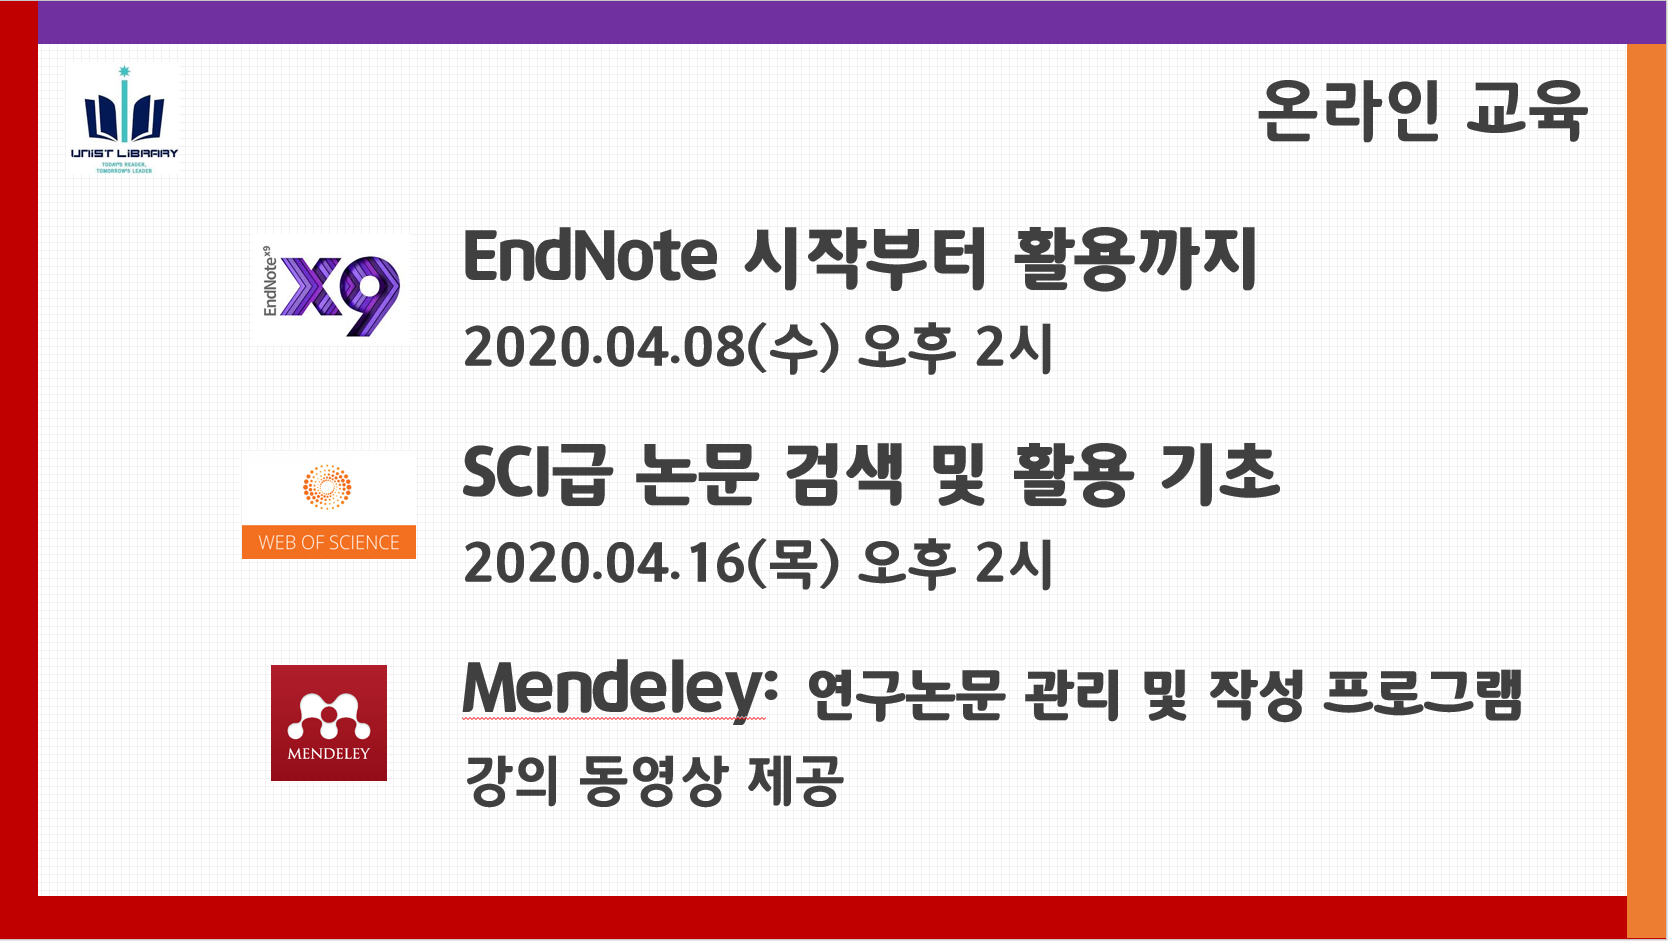 Online Library Classes: EndNote, Mendeley, Web of Science (provided in Korean)